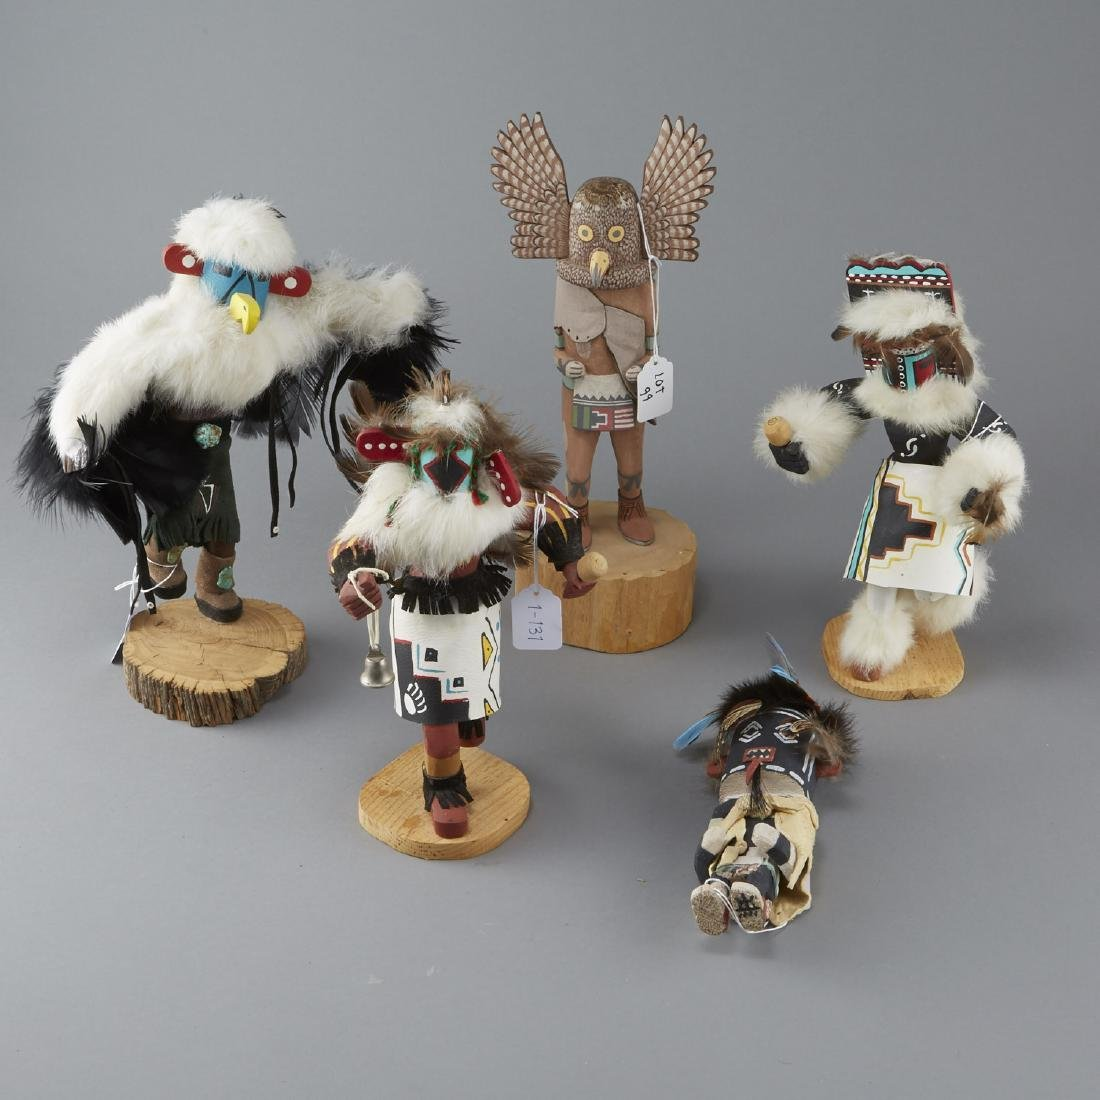 5 Kachina Figures Eagle, Chasing Star, Sio Hemis